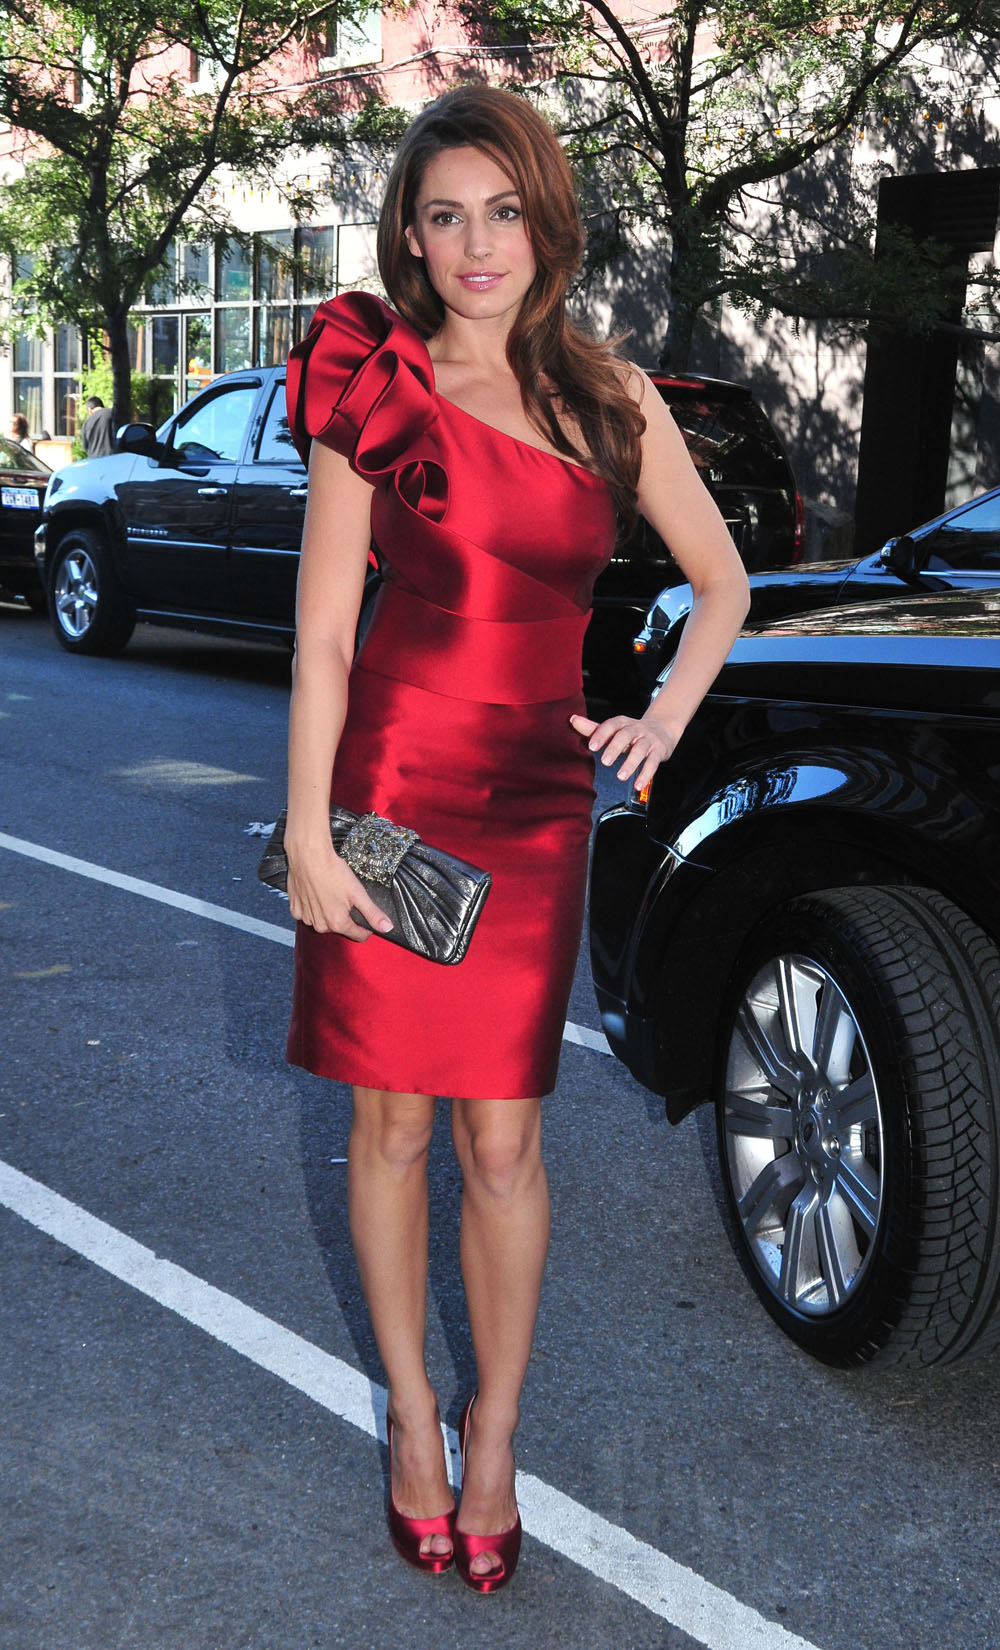 #5738344 Guest arrive at the Marchesa party which took place during the Mercedes-Benz Fashion Week Spring/Summer 2011in New York City, New york on September 15, 2010. Pictured here Kelly Brook<br /> Fame Pictures, Inc - Santa Monica, CA, USA - +1 (310) 395-05